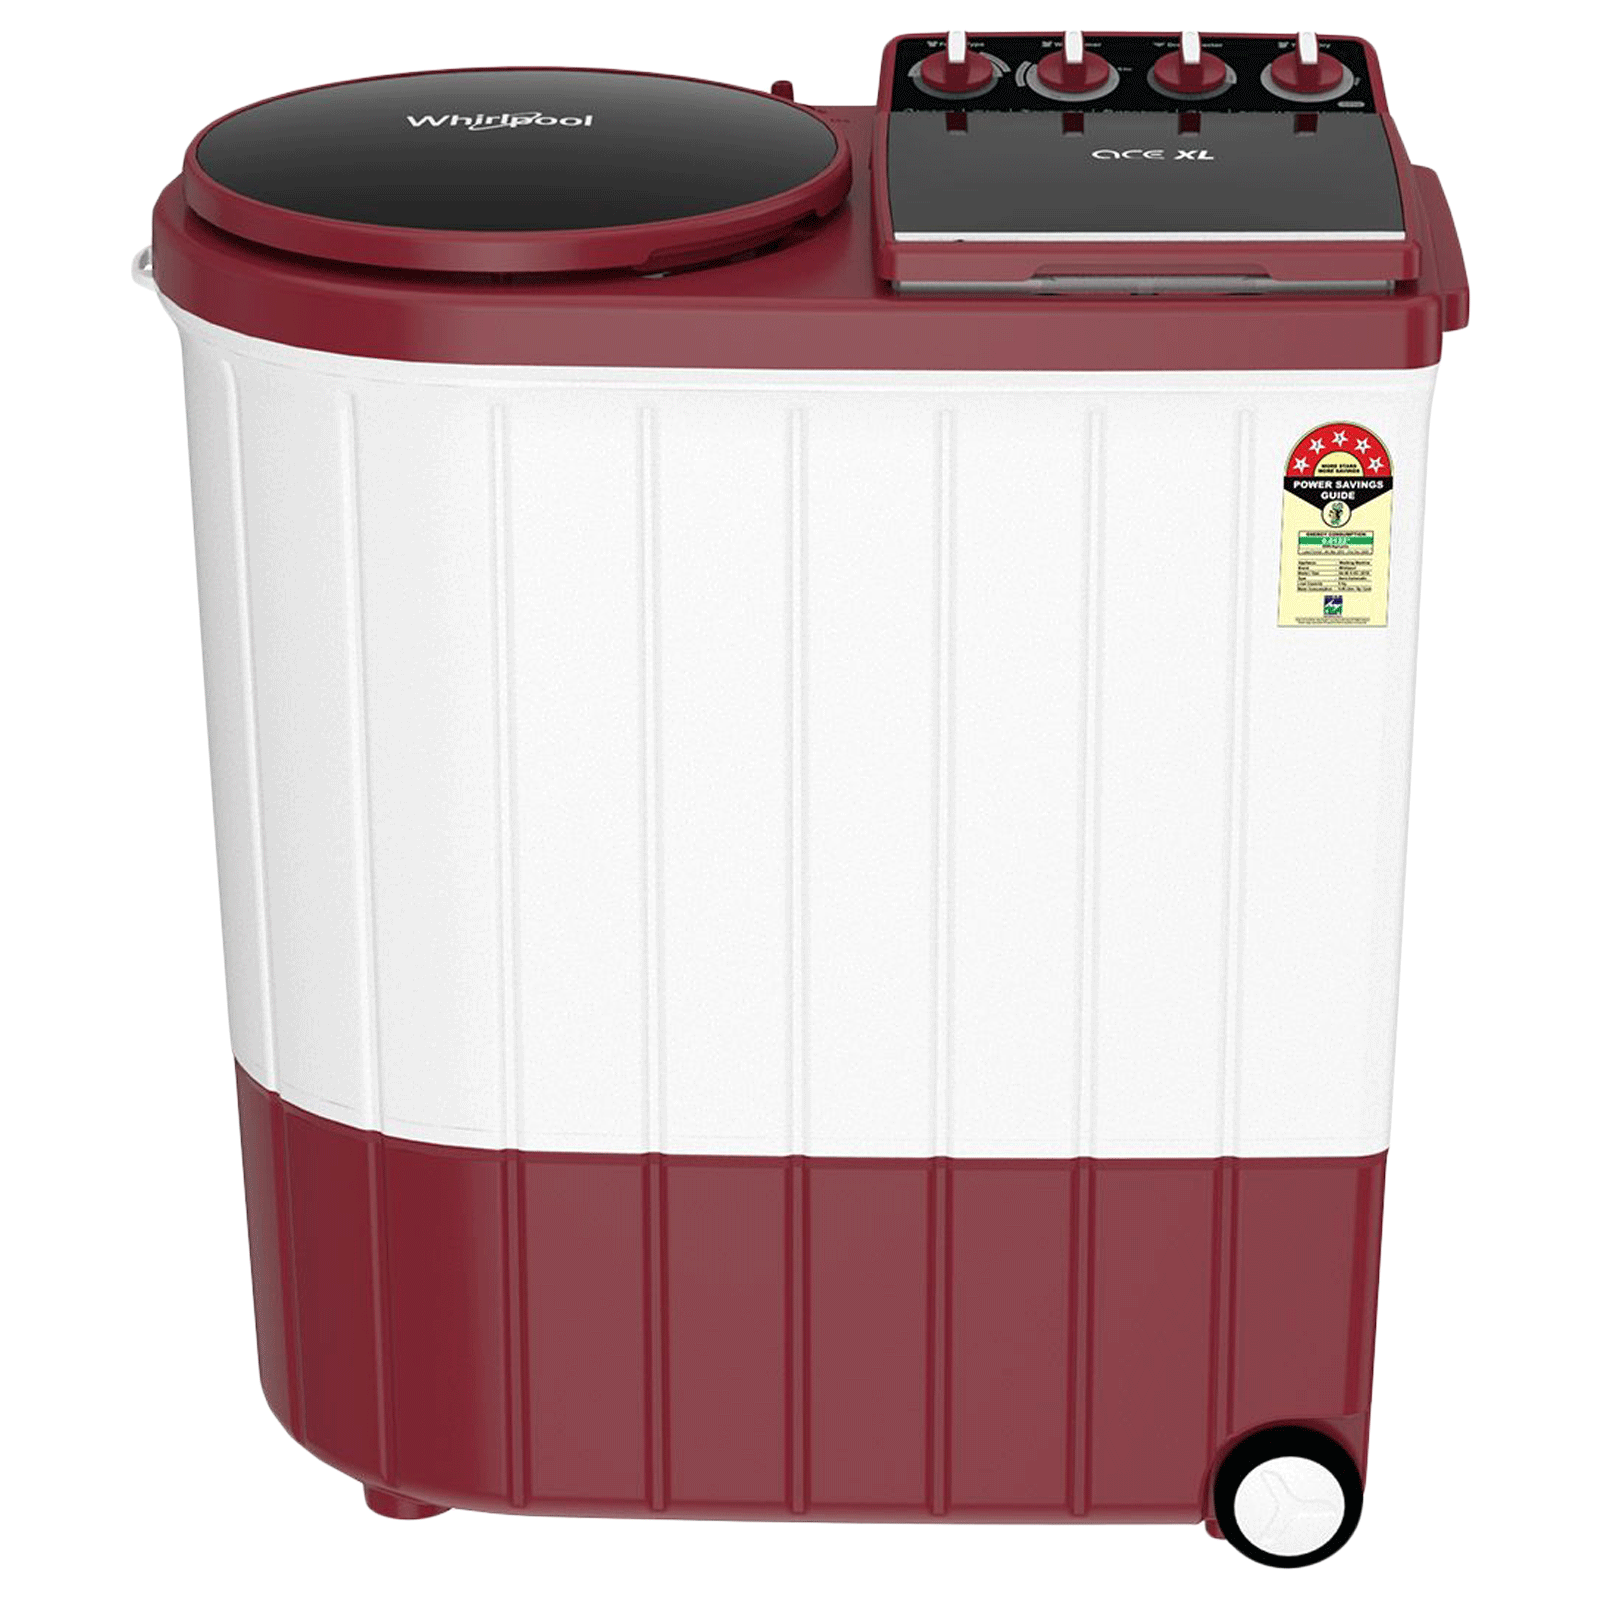 Whirlpool Ace Xl 9 kg 5 Star Semi-Automatic Top Load Washing Machine (Impeller Wash Technology, Coral Red)_1